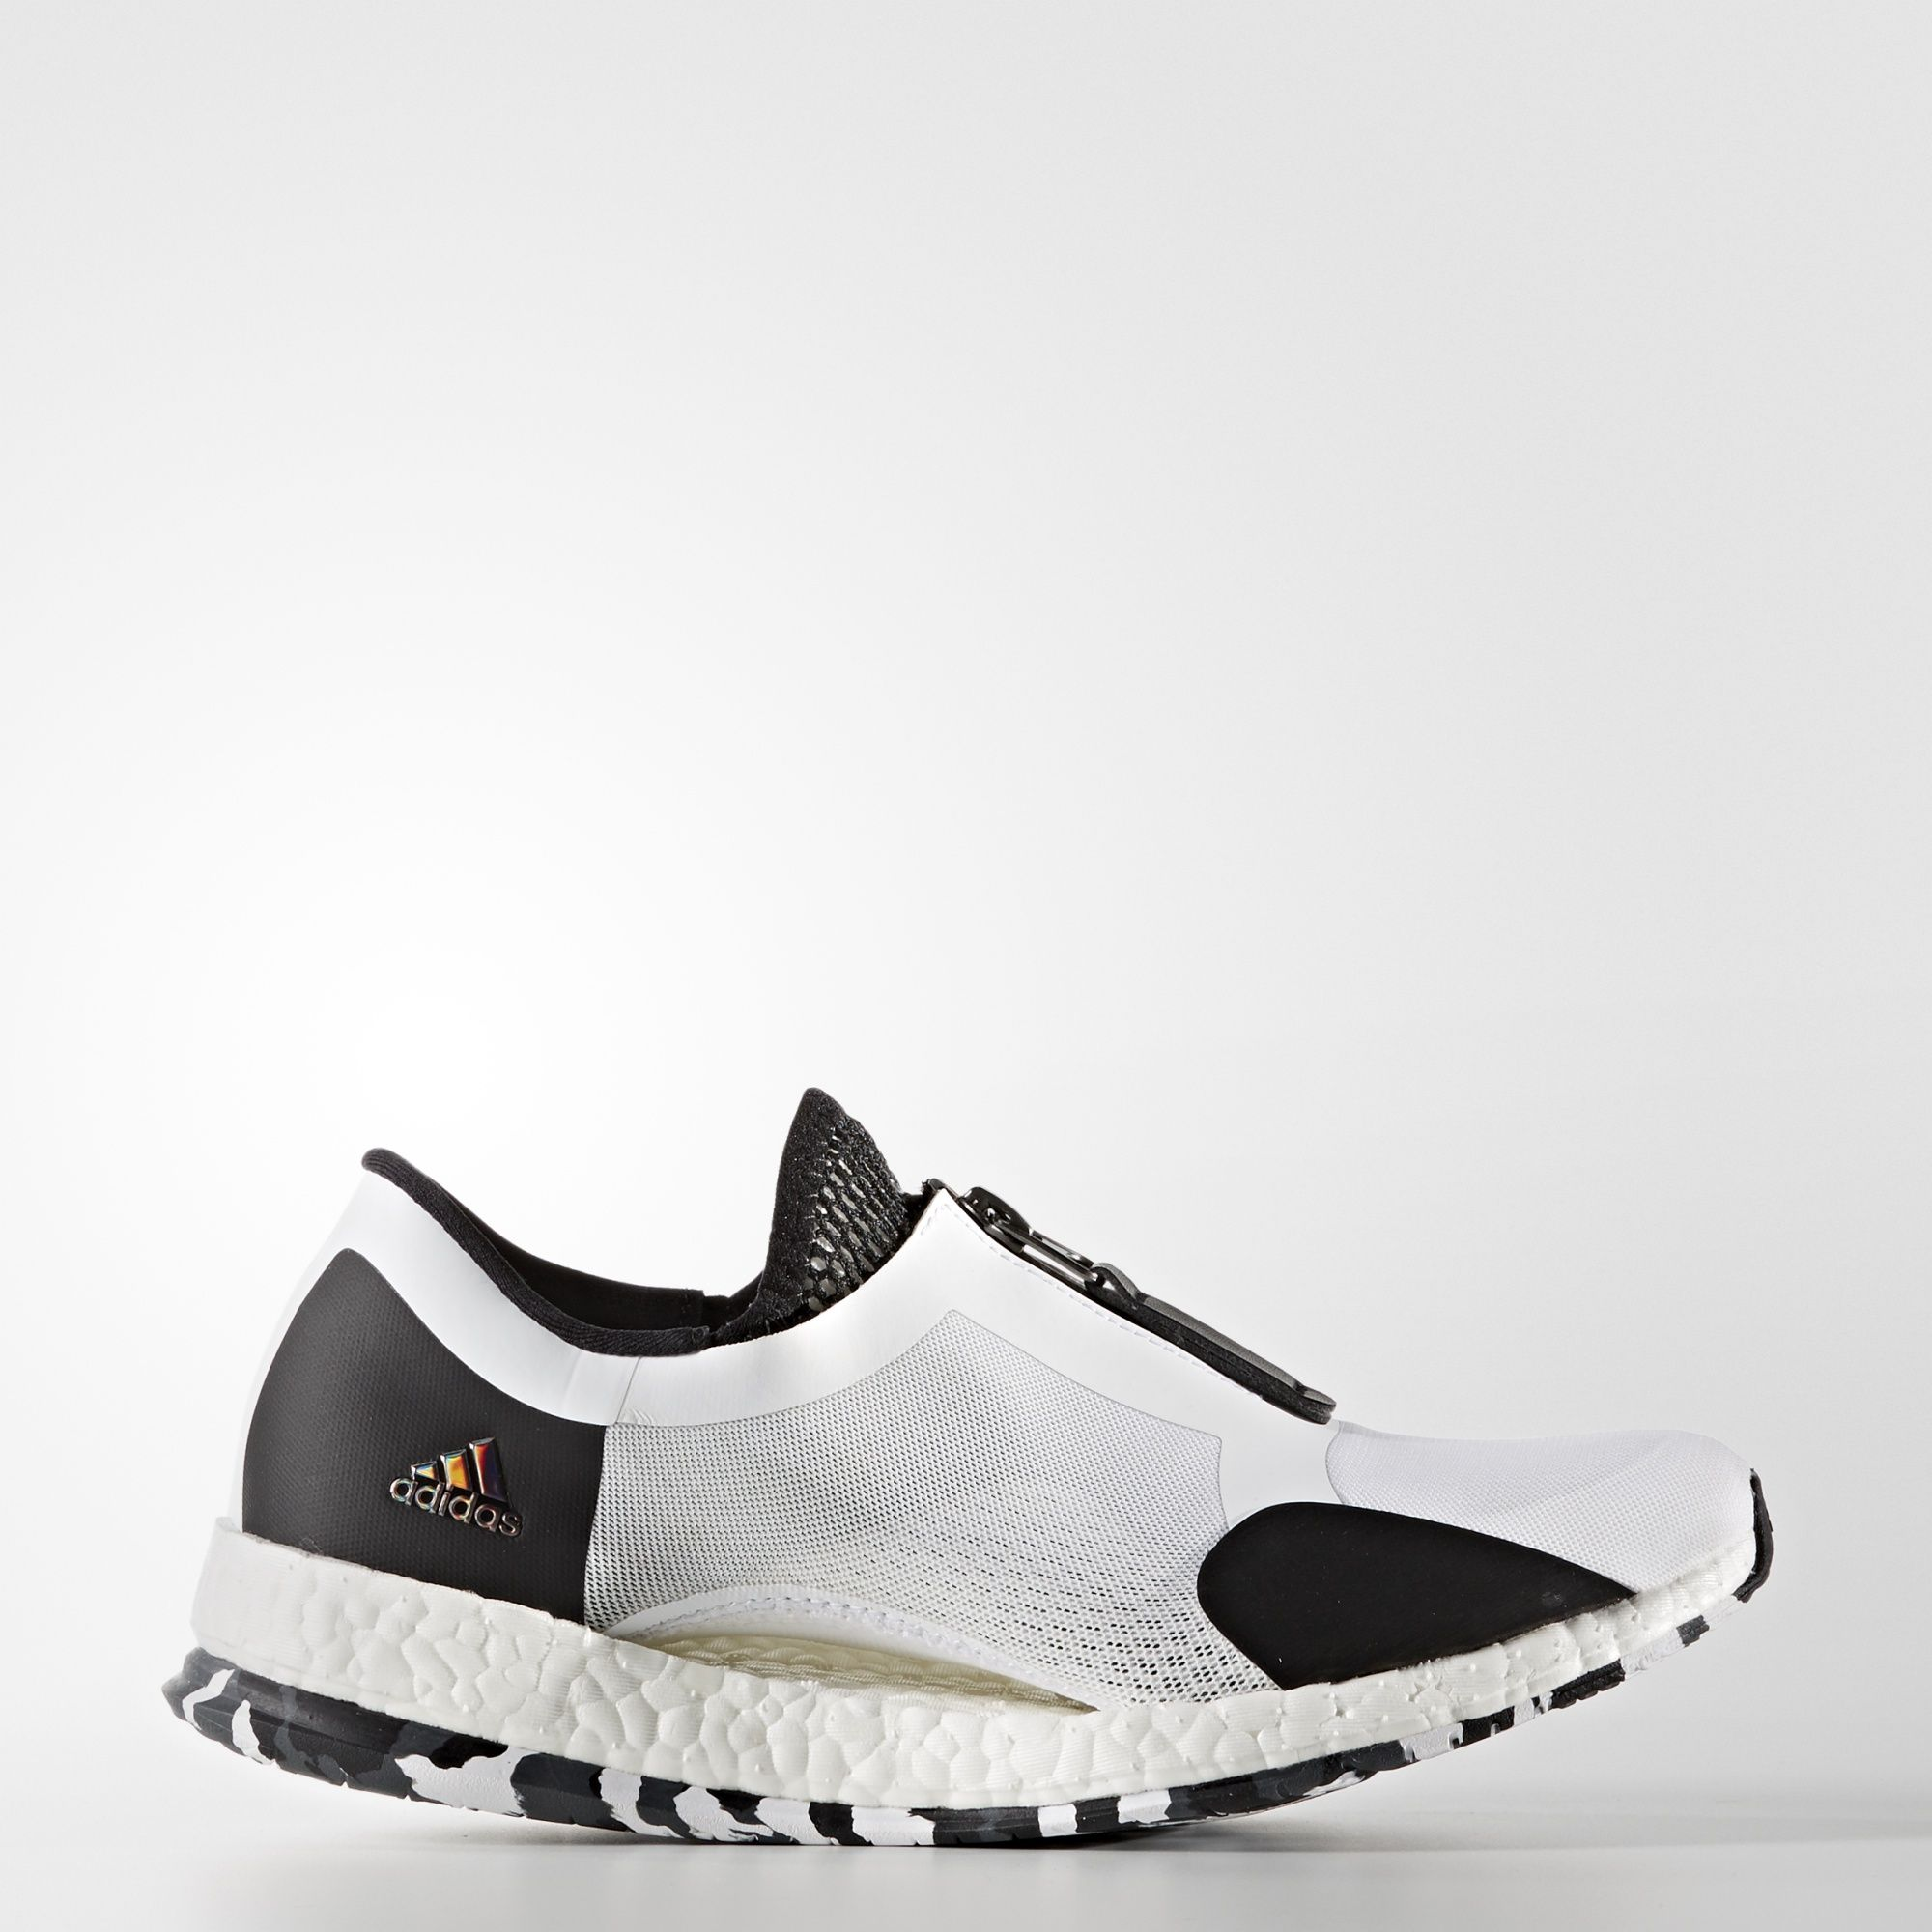 Check Pure Boost X Trainer Zip Shoes by Adidas – Find thousands of sports  items at Flybery.